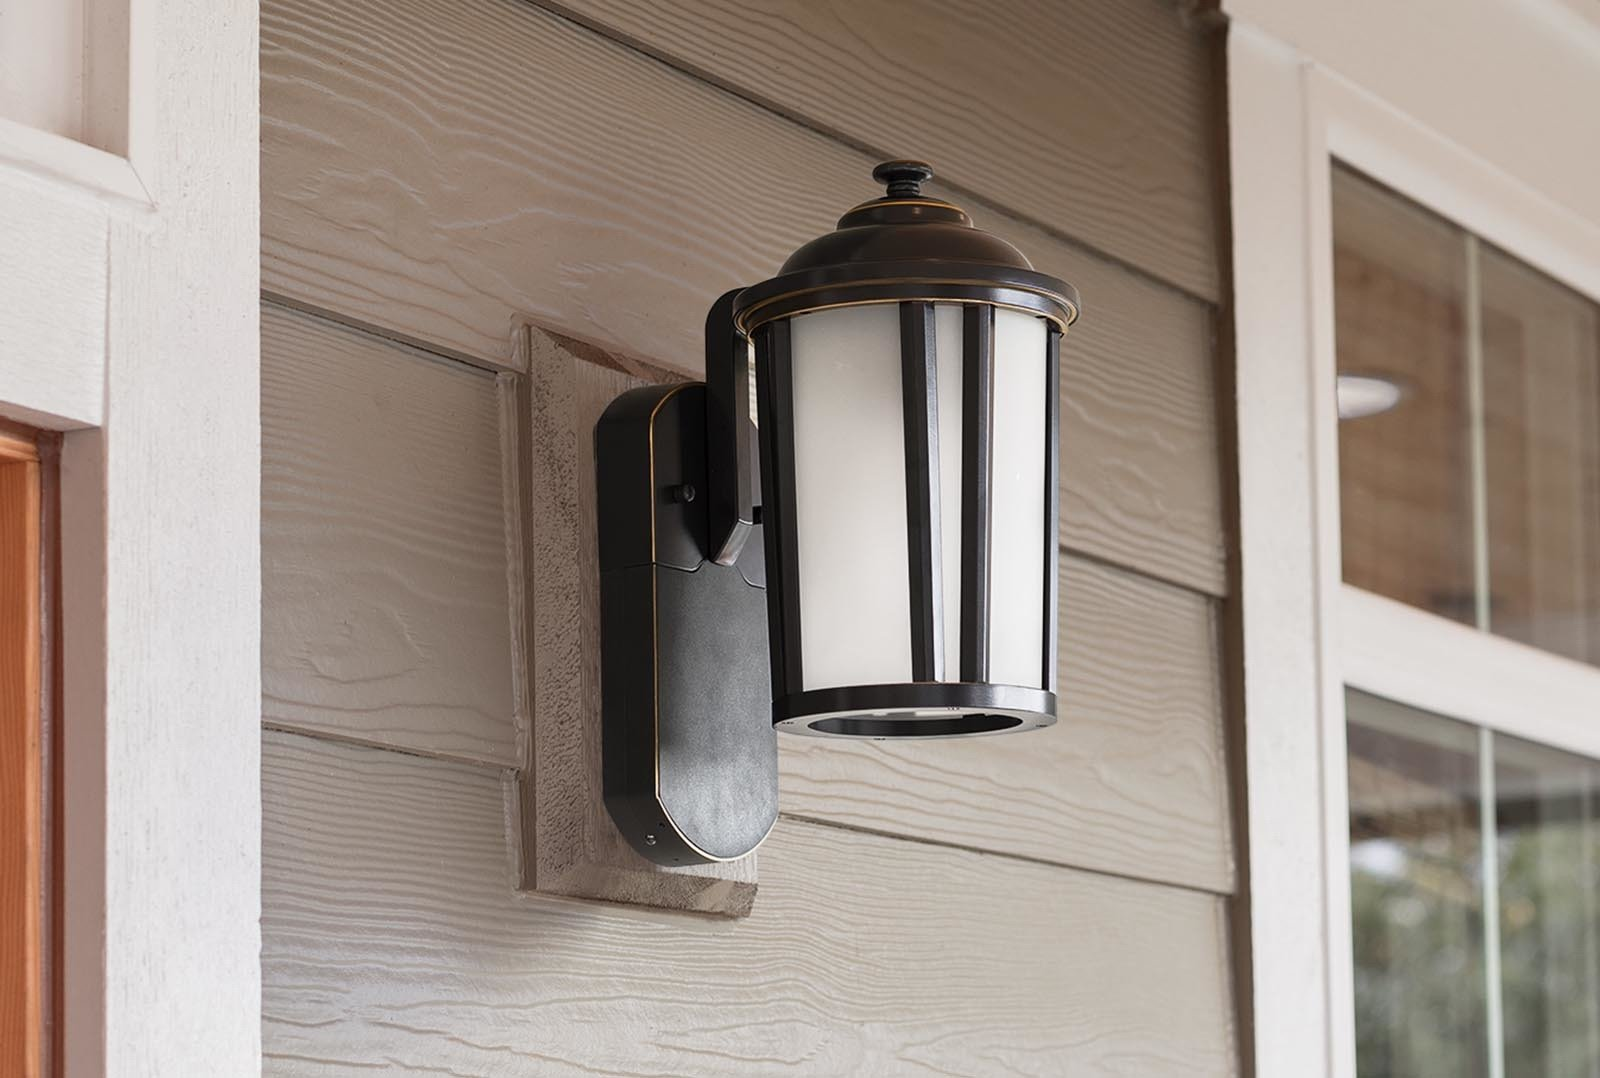 Photo 6 of 9 in 5 of the Best-Looking Home Security Systems Out There